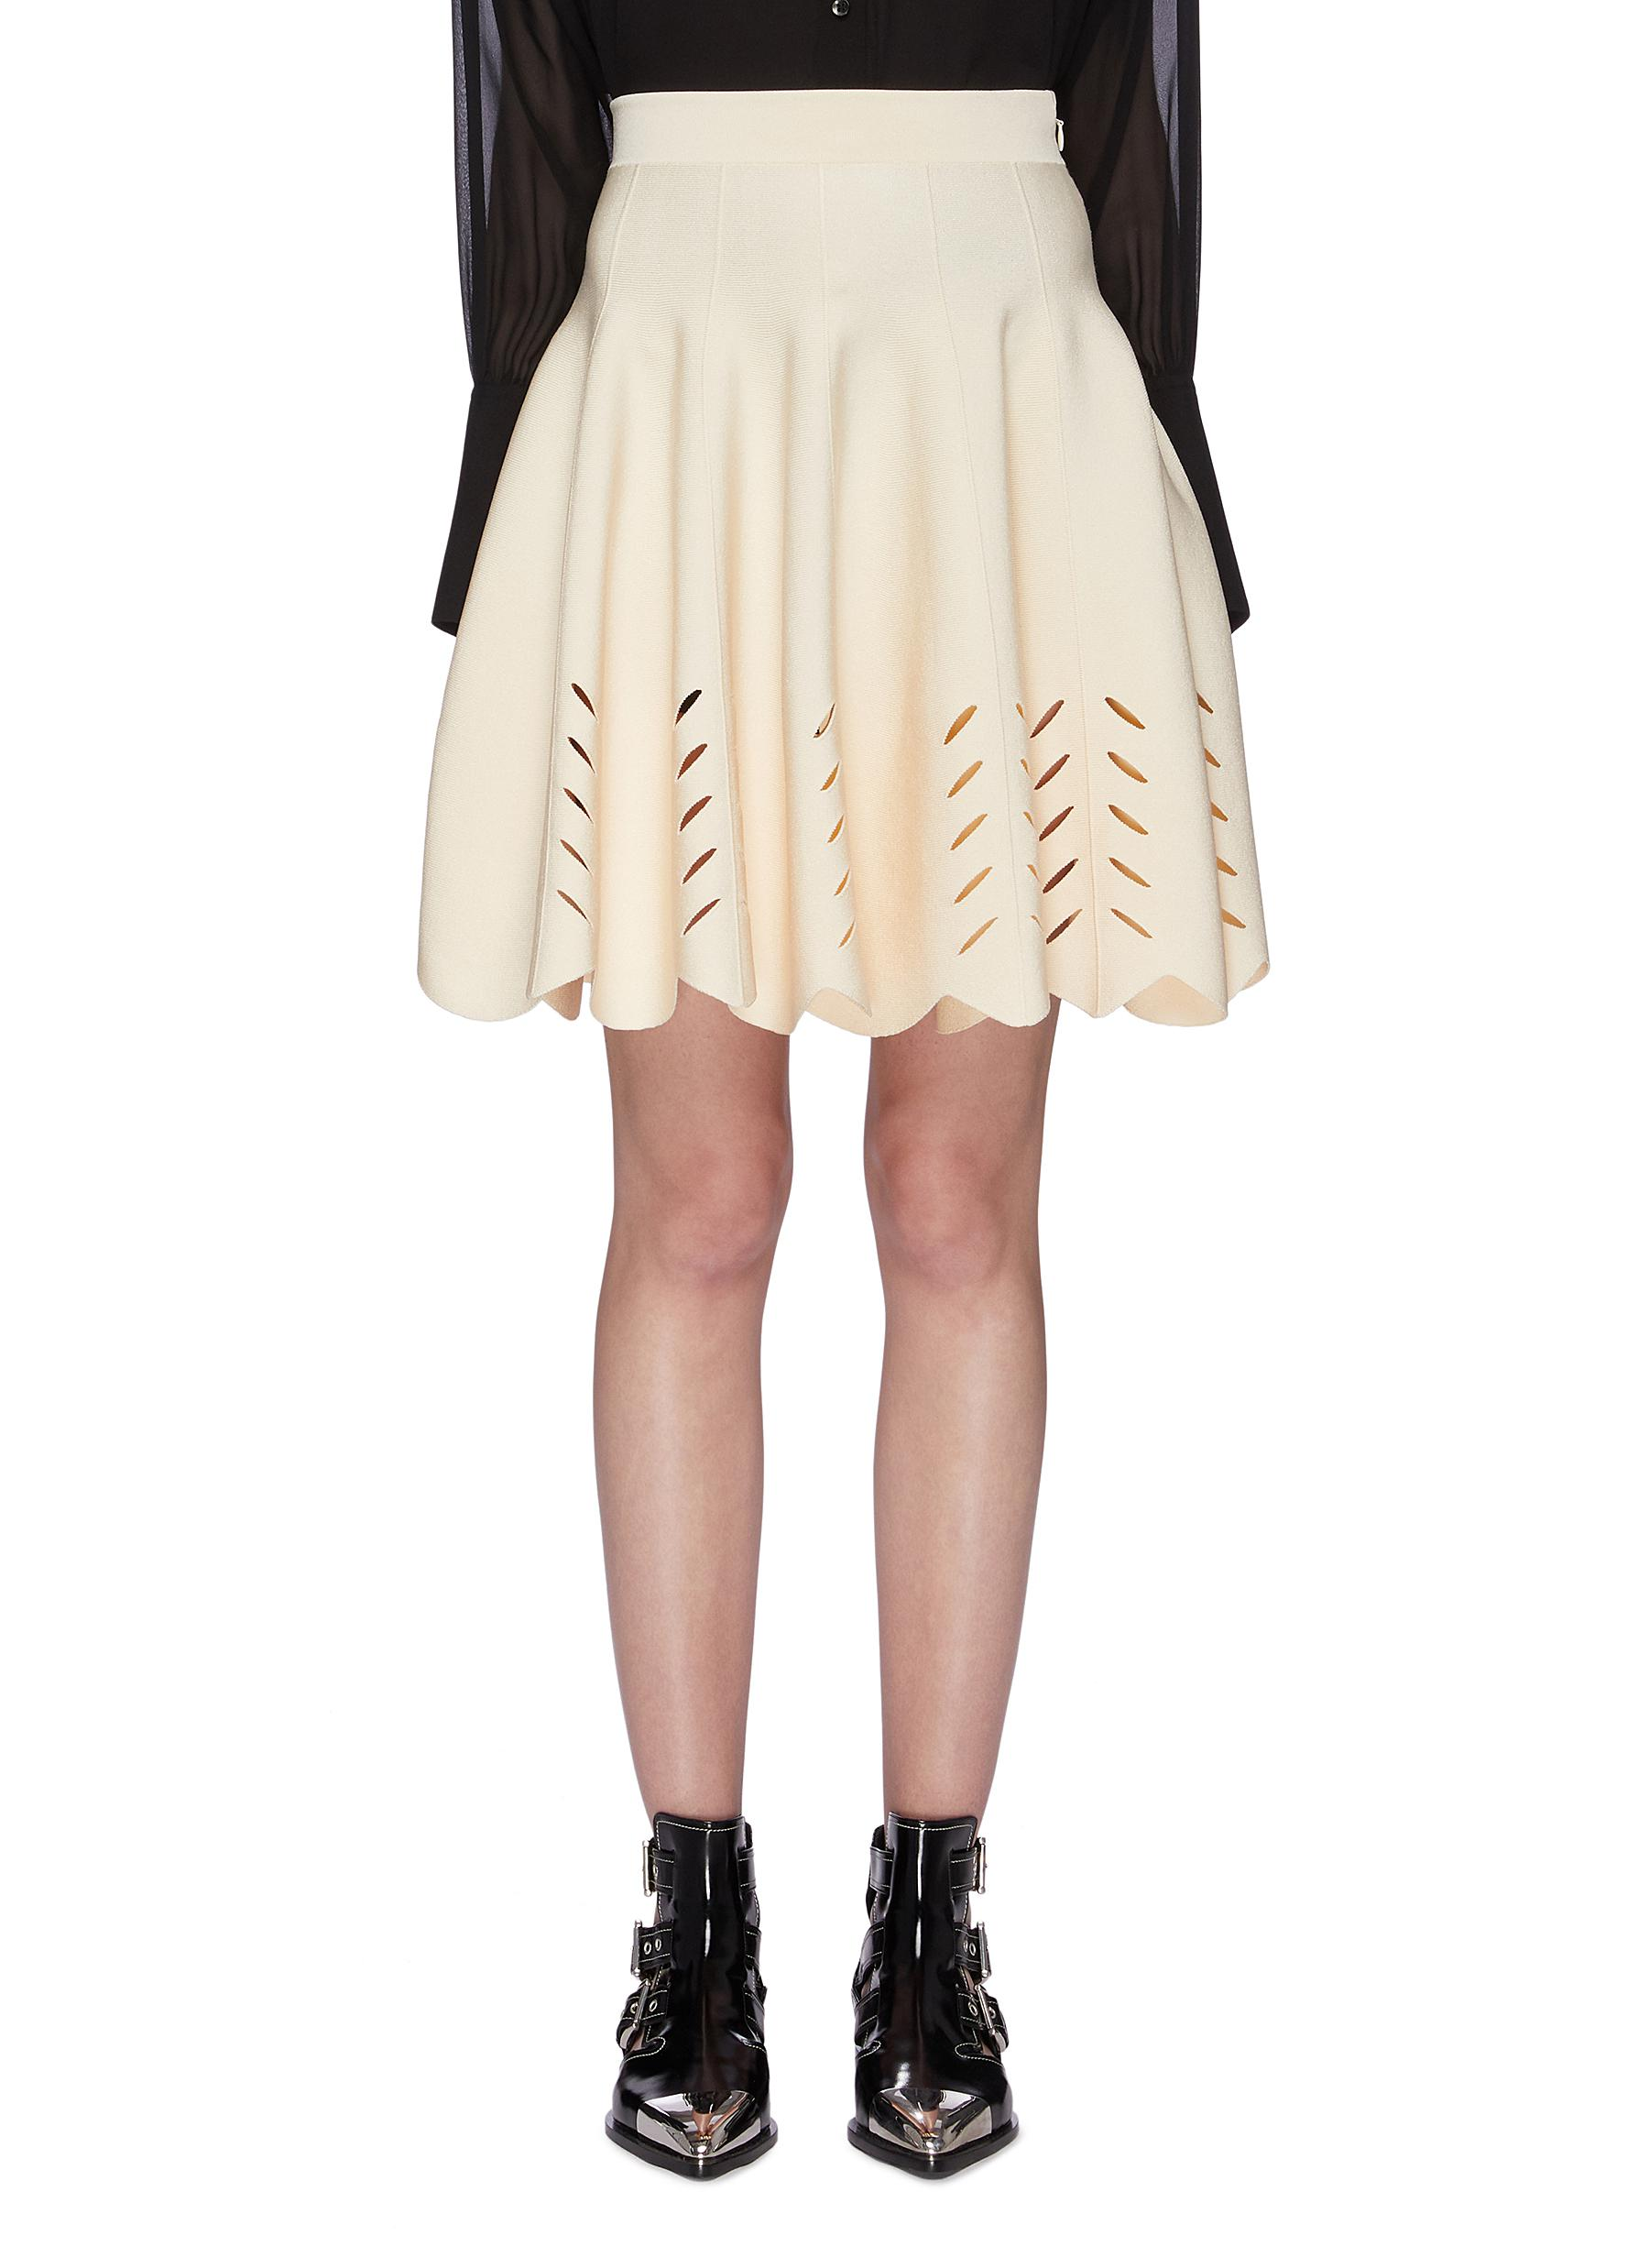 Cutout scalloped knit skirt by Alexander Mcqueen